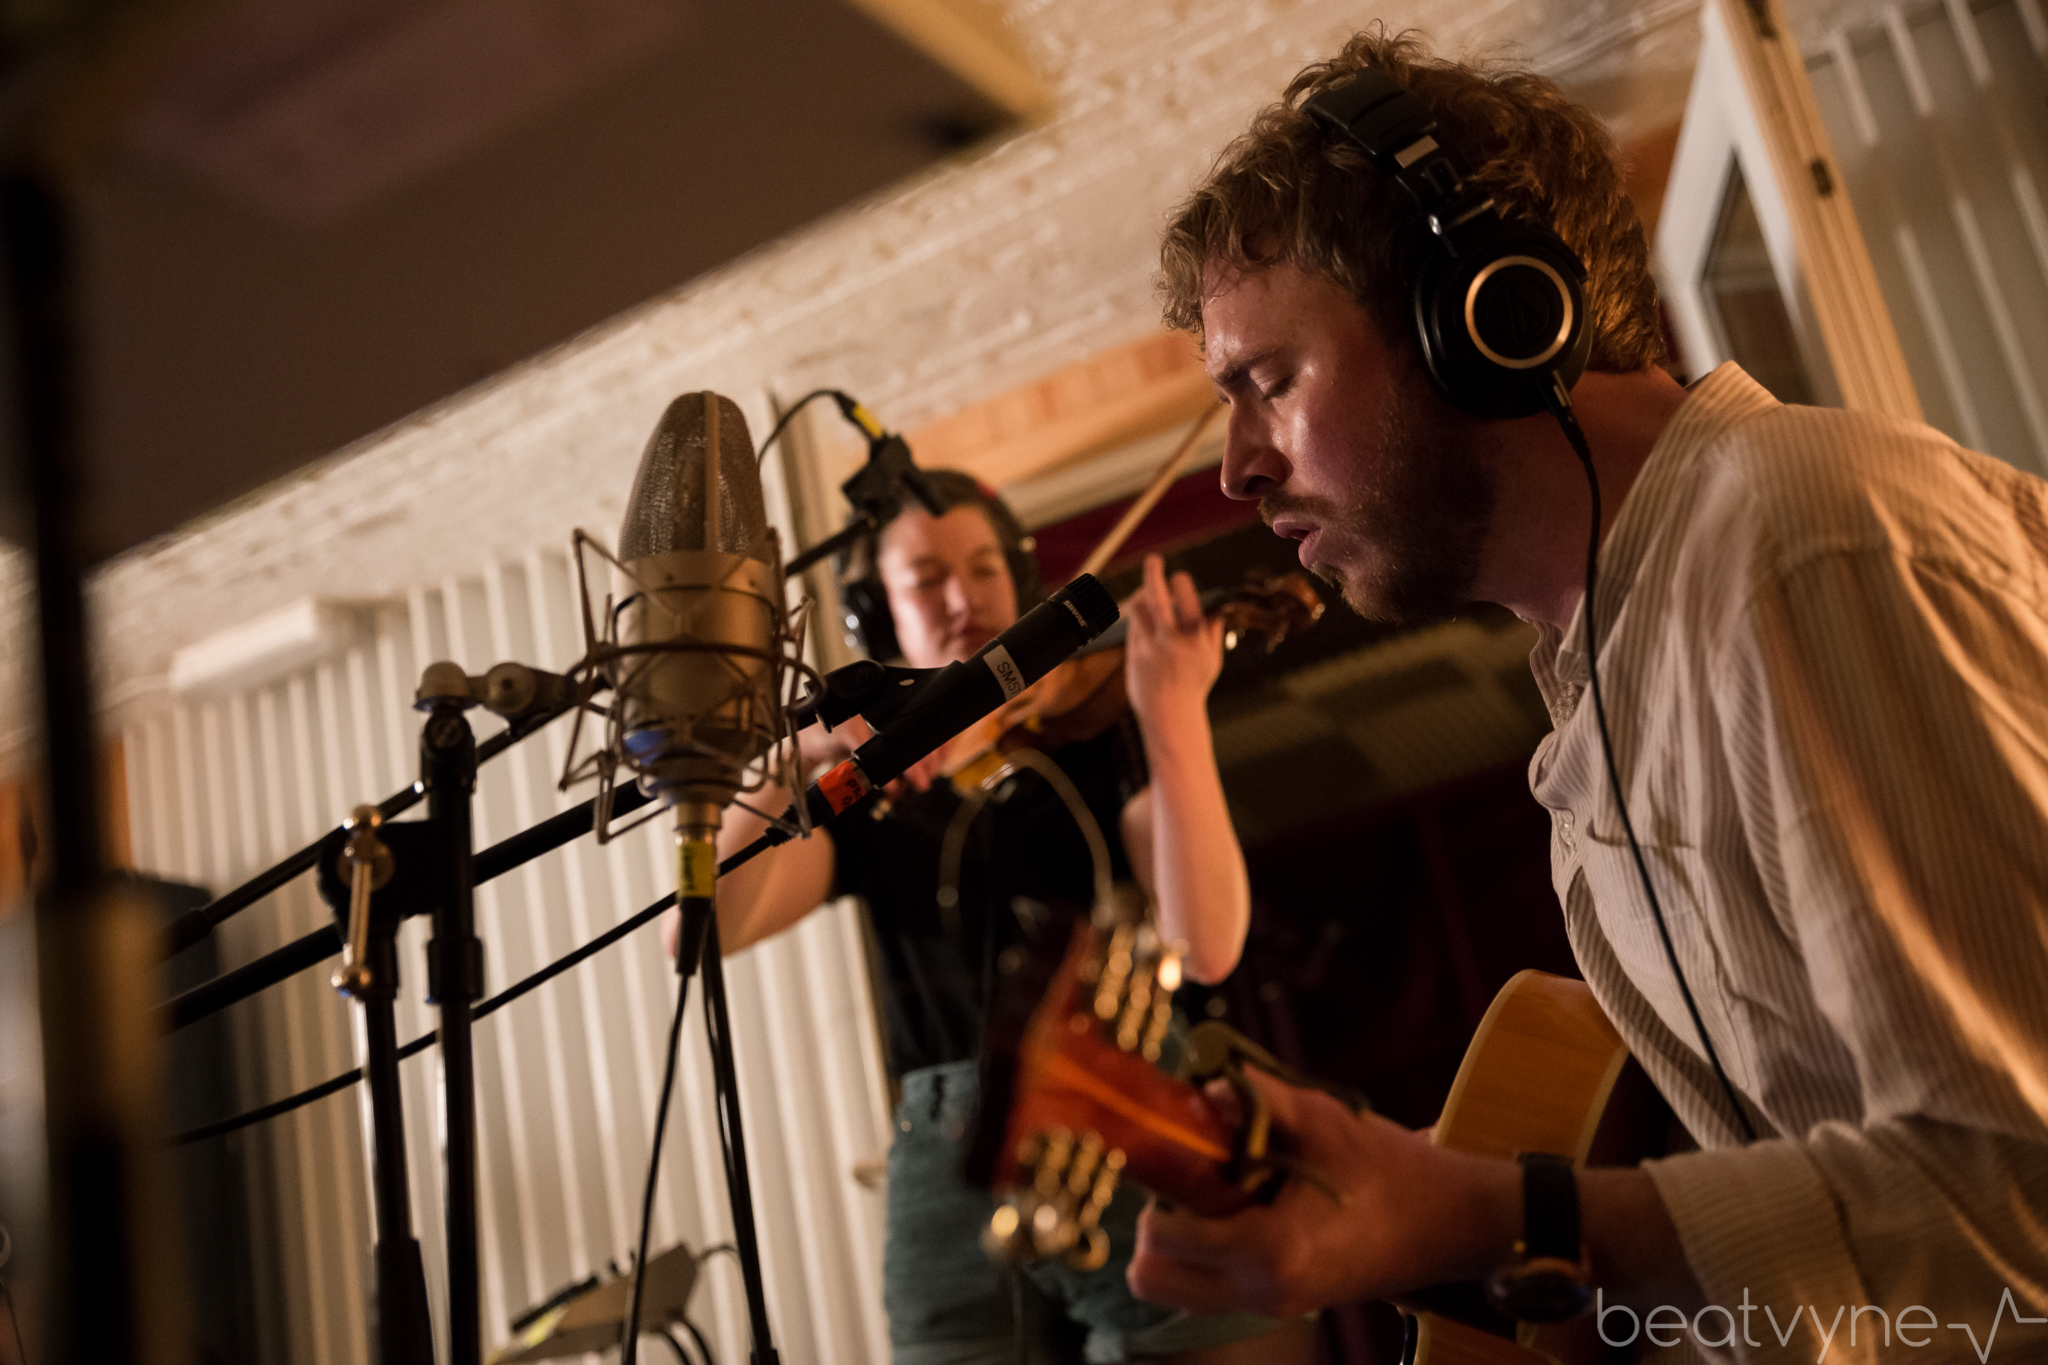 beatvyne's Live Recording Sessions at Sun Studios